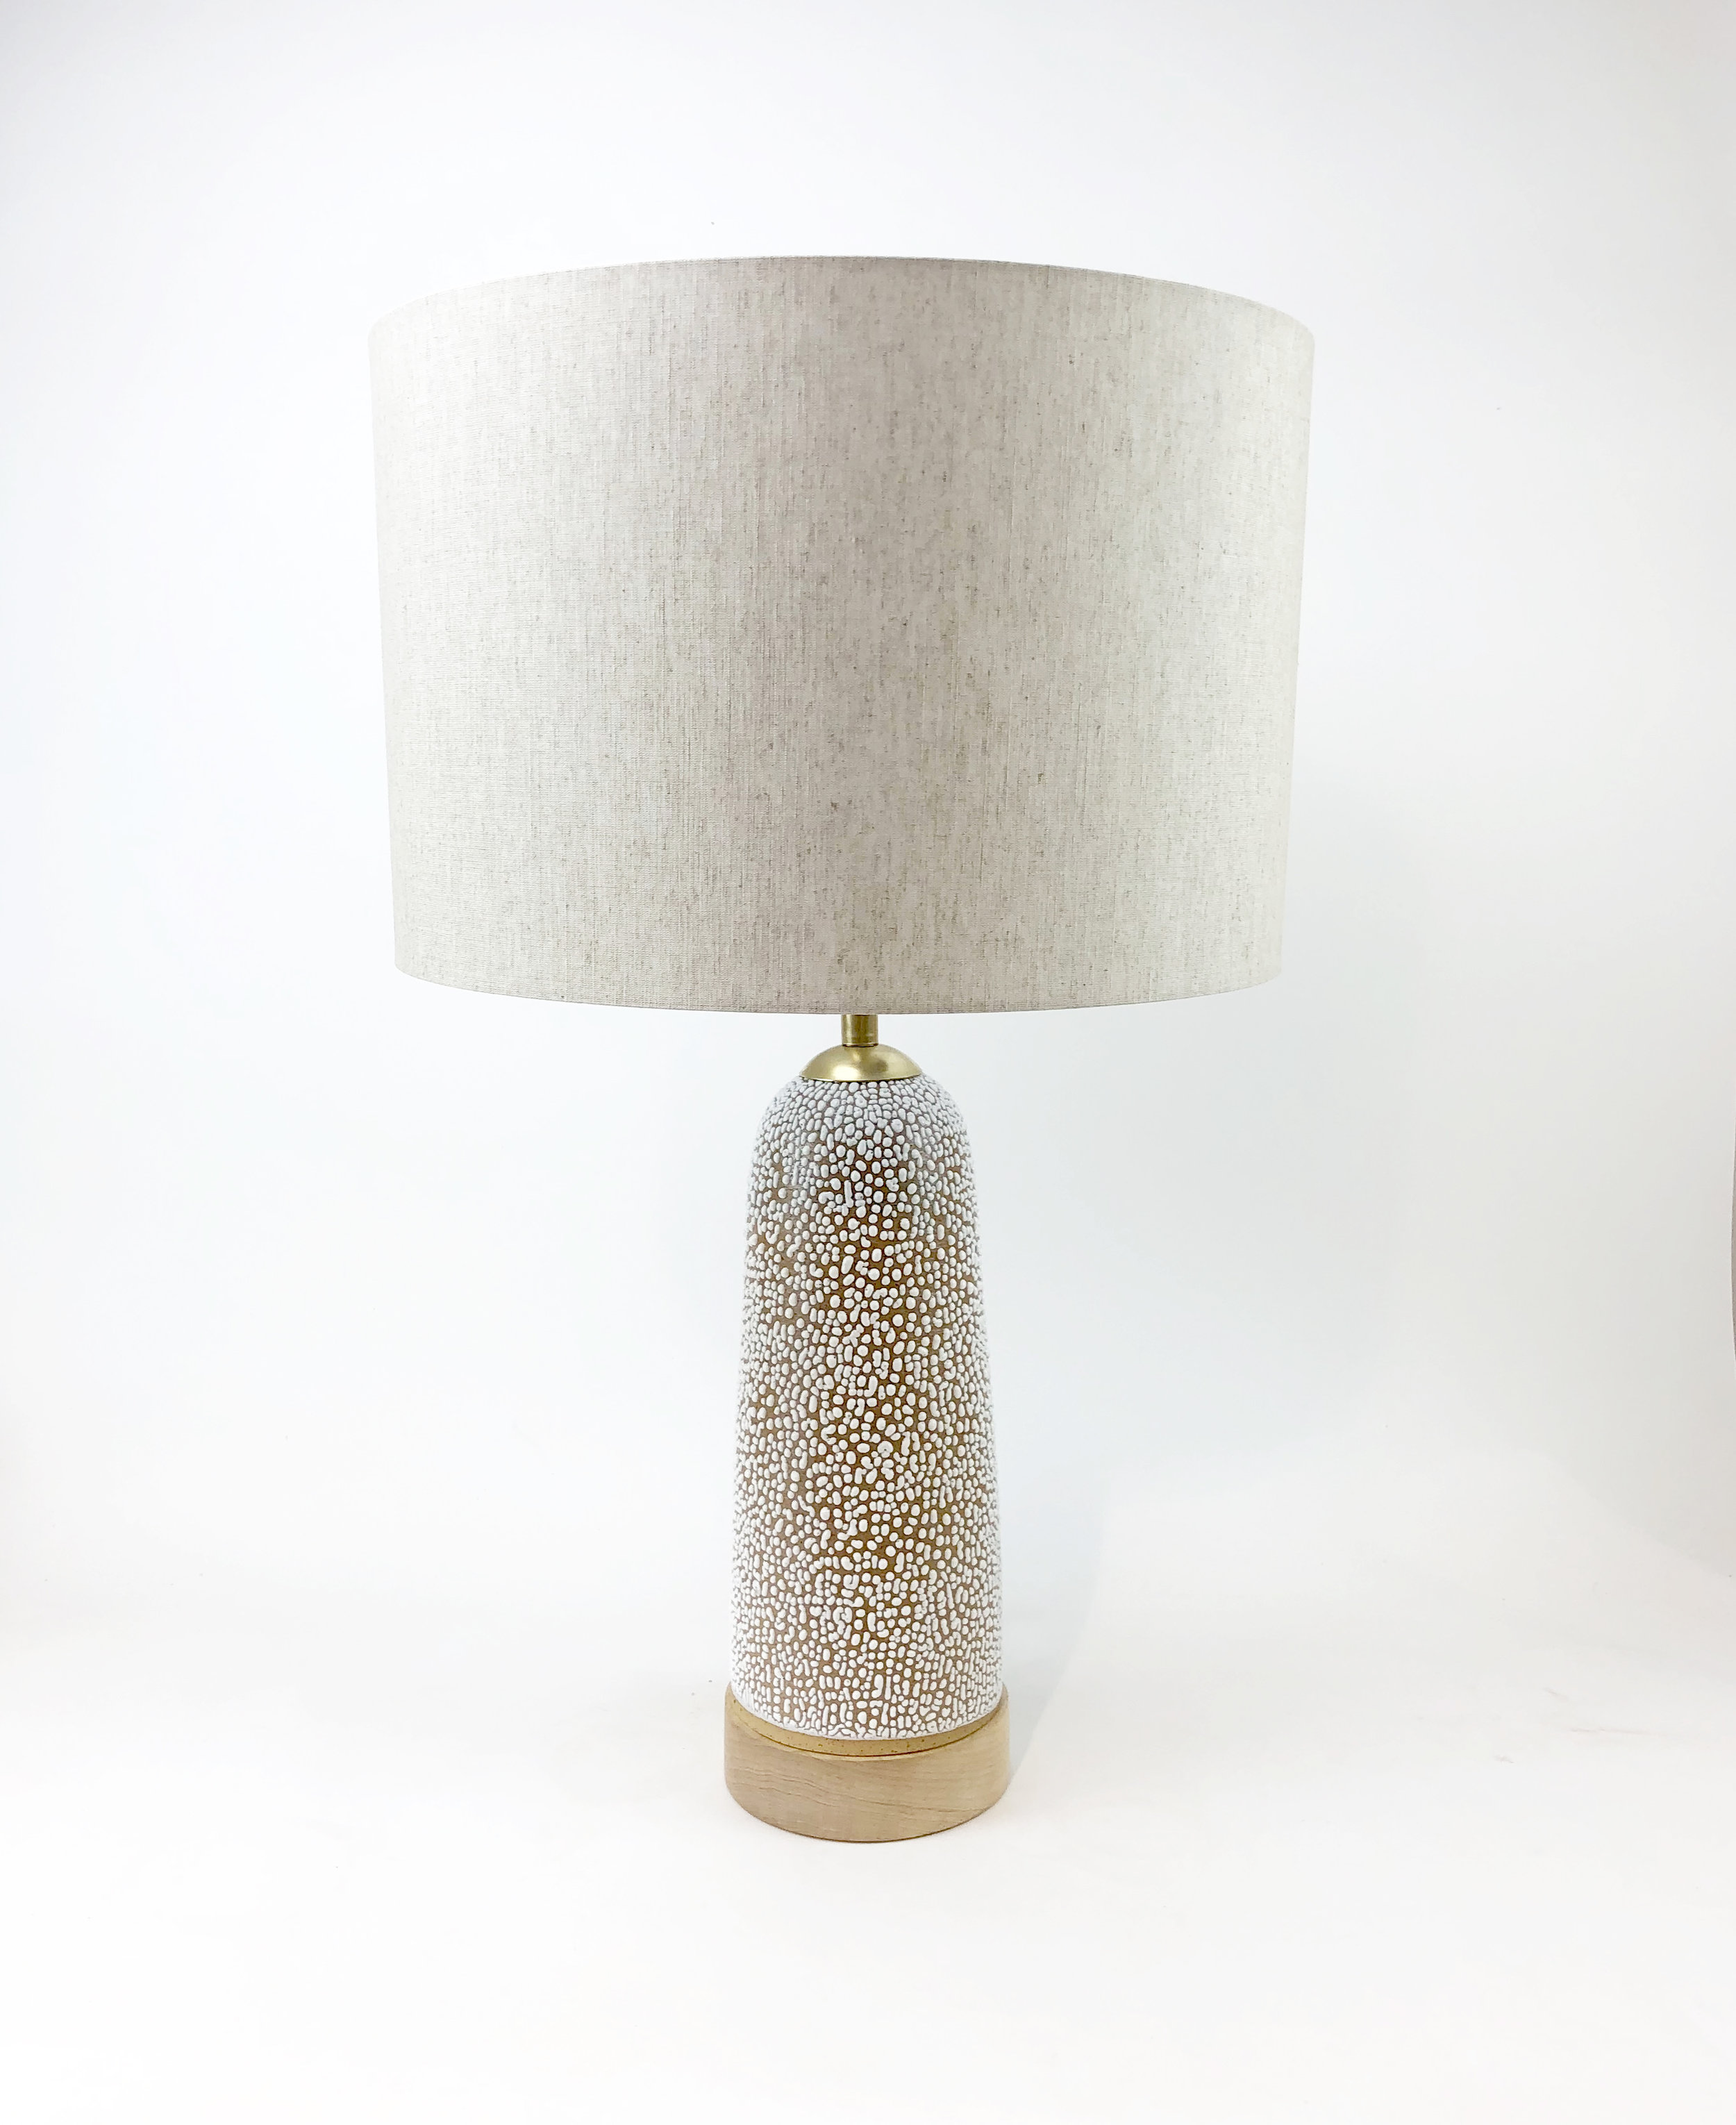 Crawl Lamp_2019.jpg